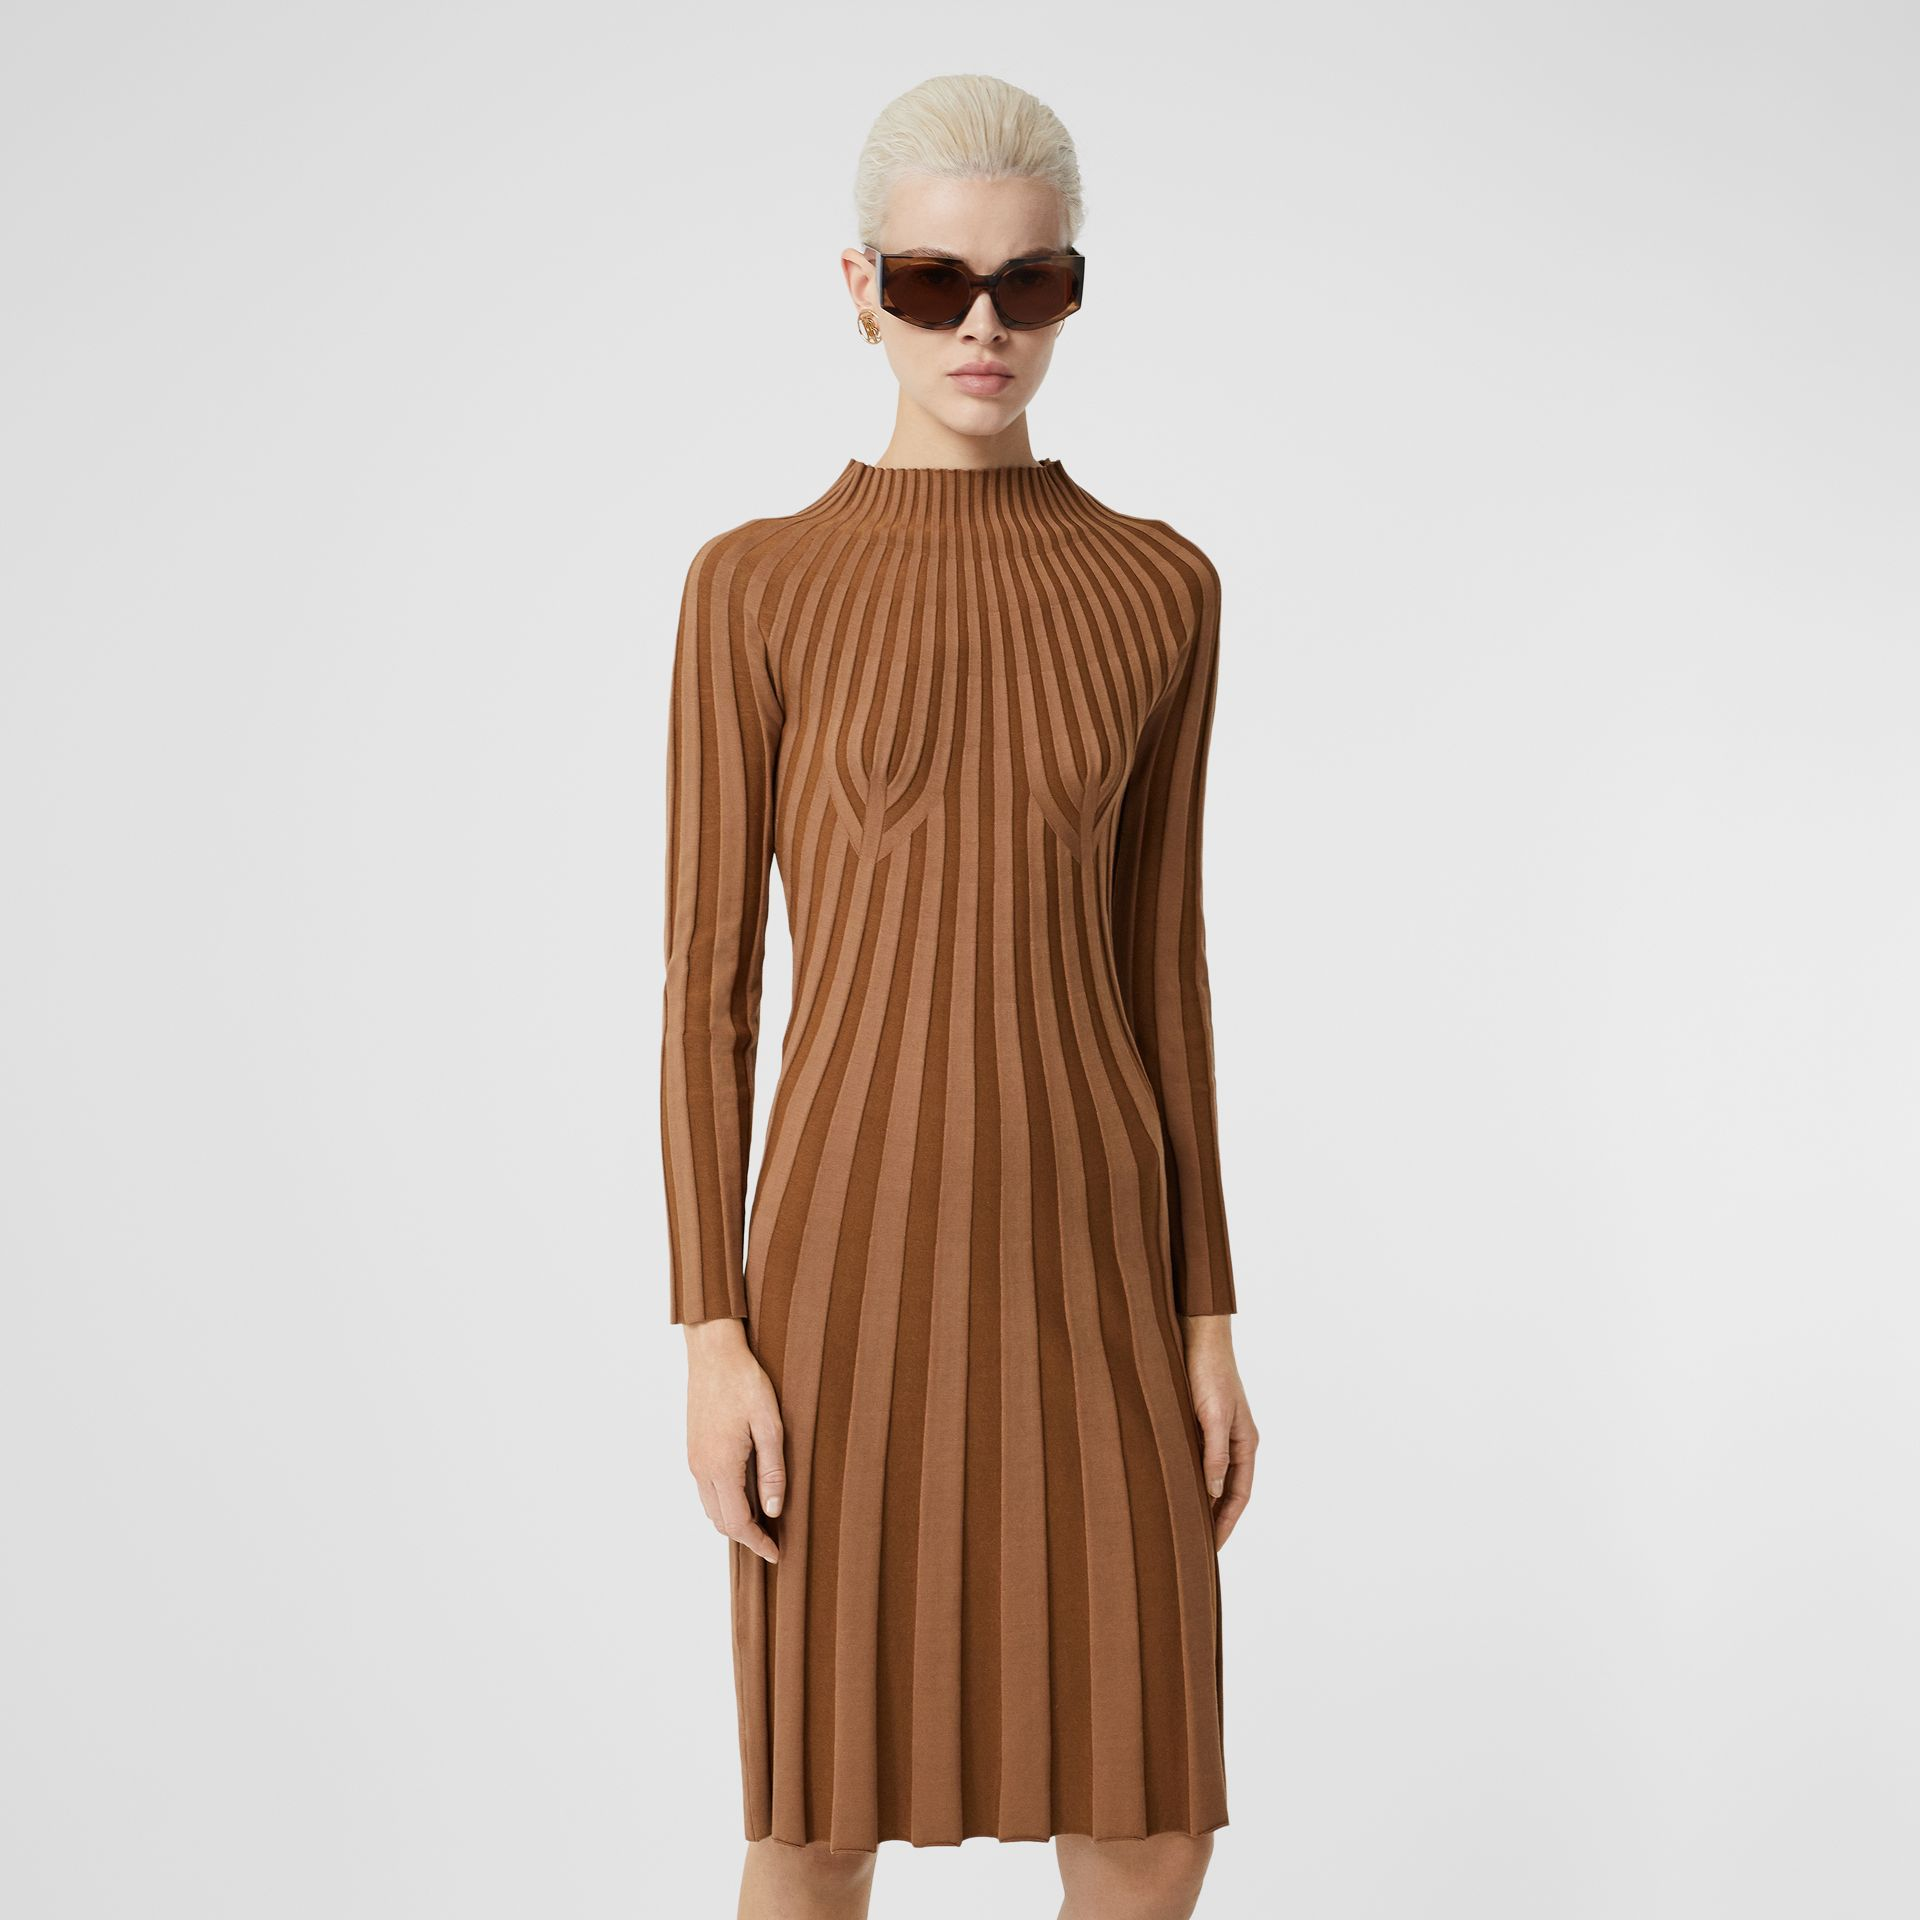 Long-sleeve Rib Knit Stretch Silk Blend Dress in Truffle - Women | Burberry - gallery image 4